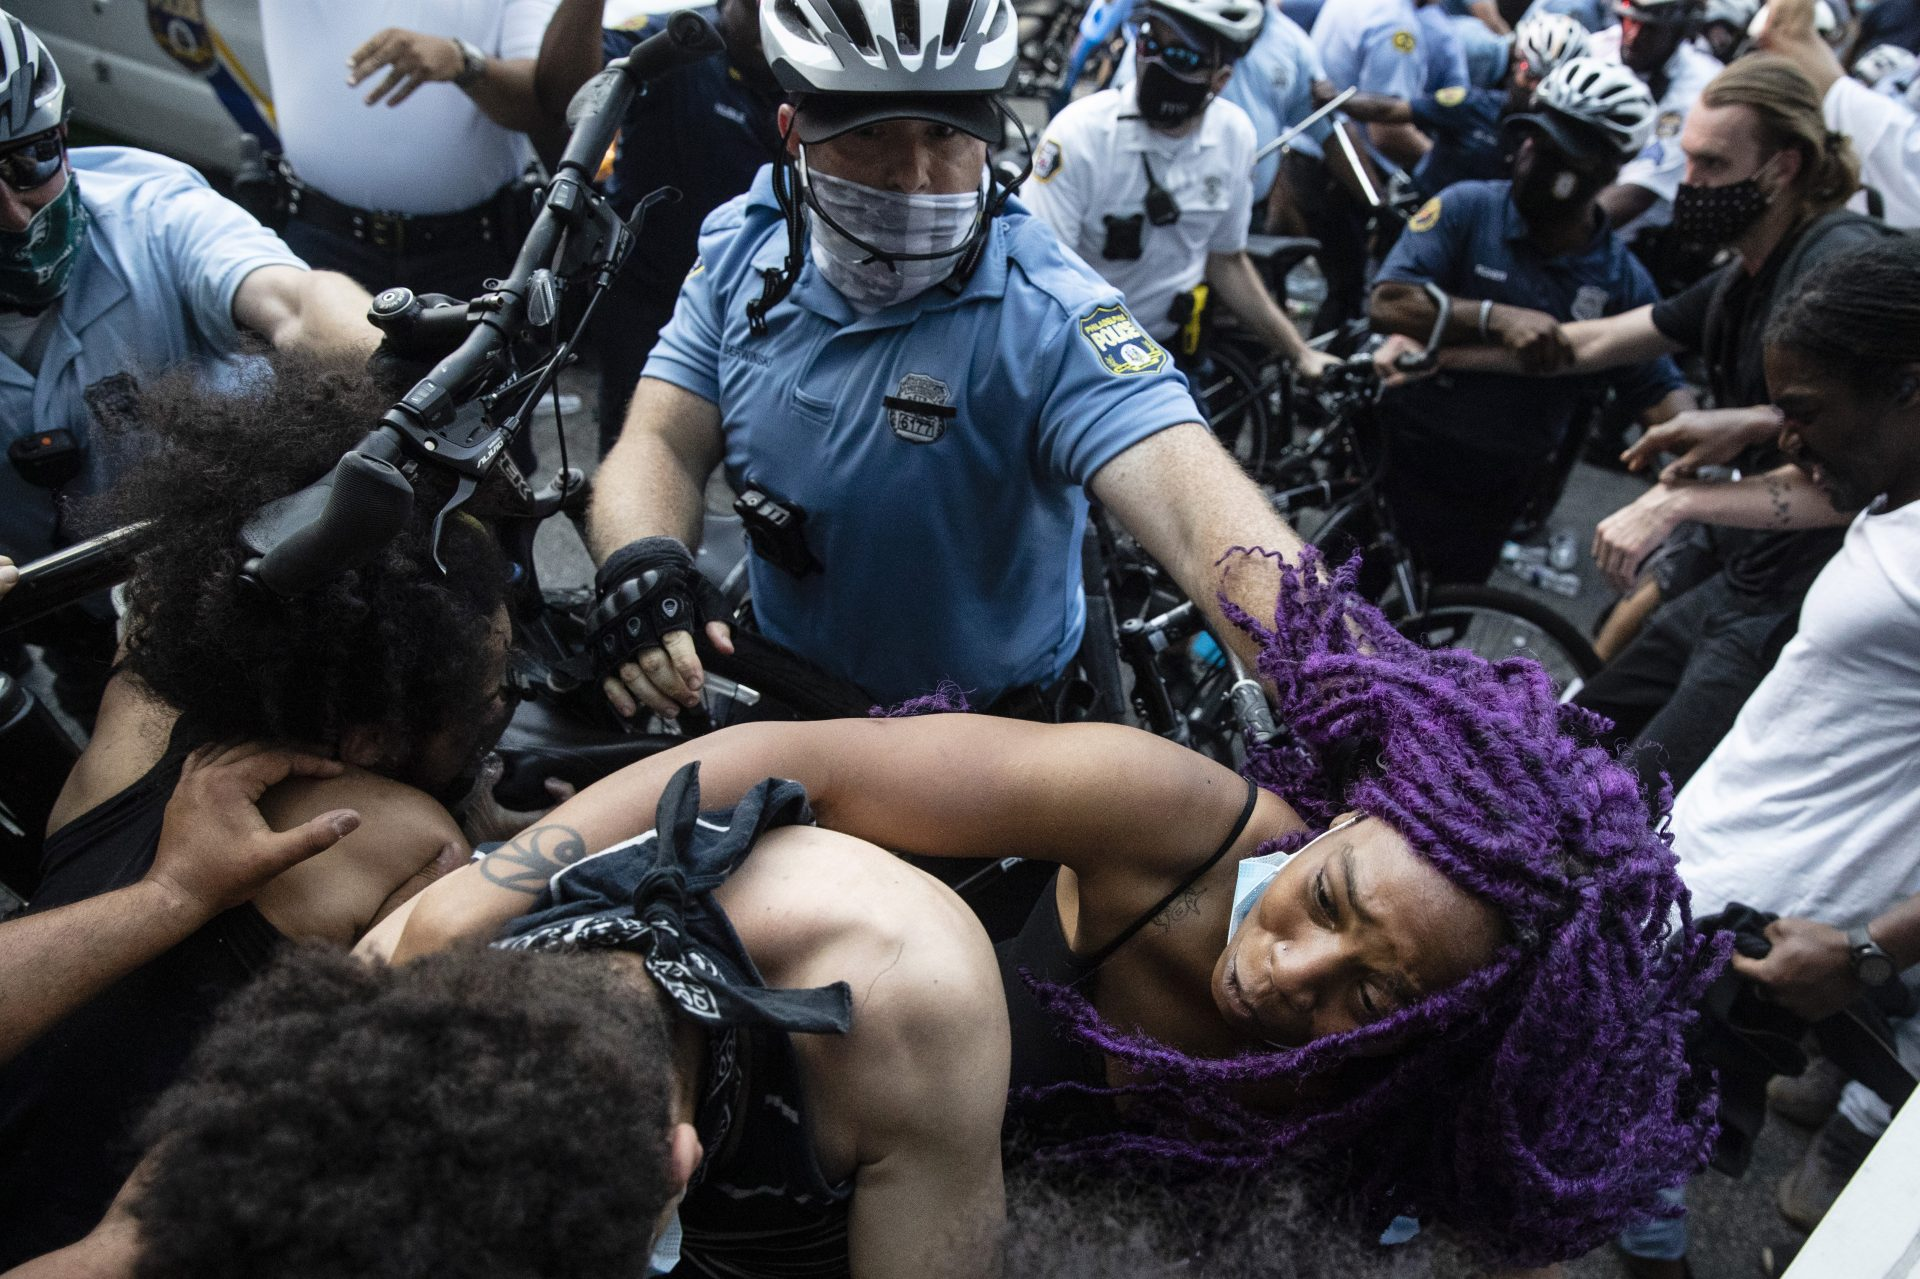 Police and protesters clash Saturday, May 30, 2020, in Philadelphia, during a demonstration over the death of George Floyd, a black man who was in police custody in Minneapolis. Floyd died after being restrained by Minneapolis police officers on Memorial Day.